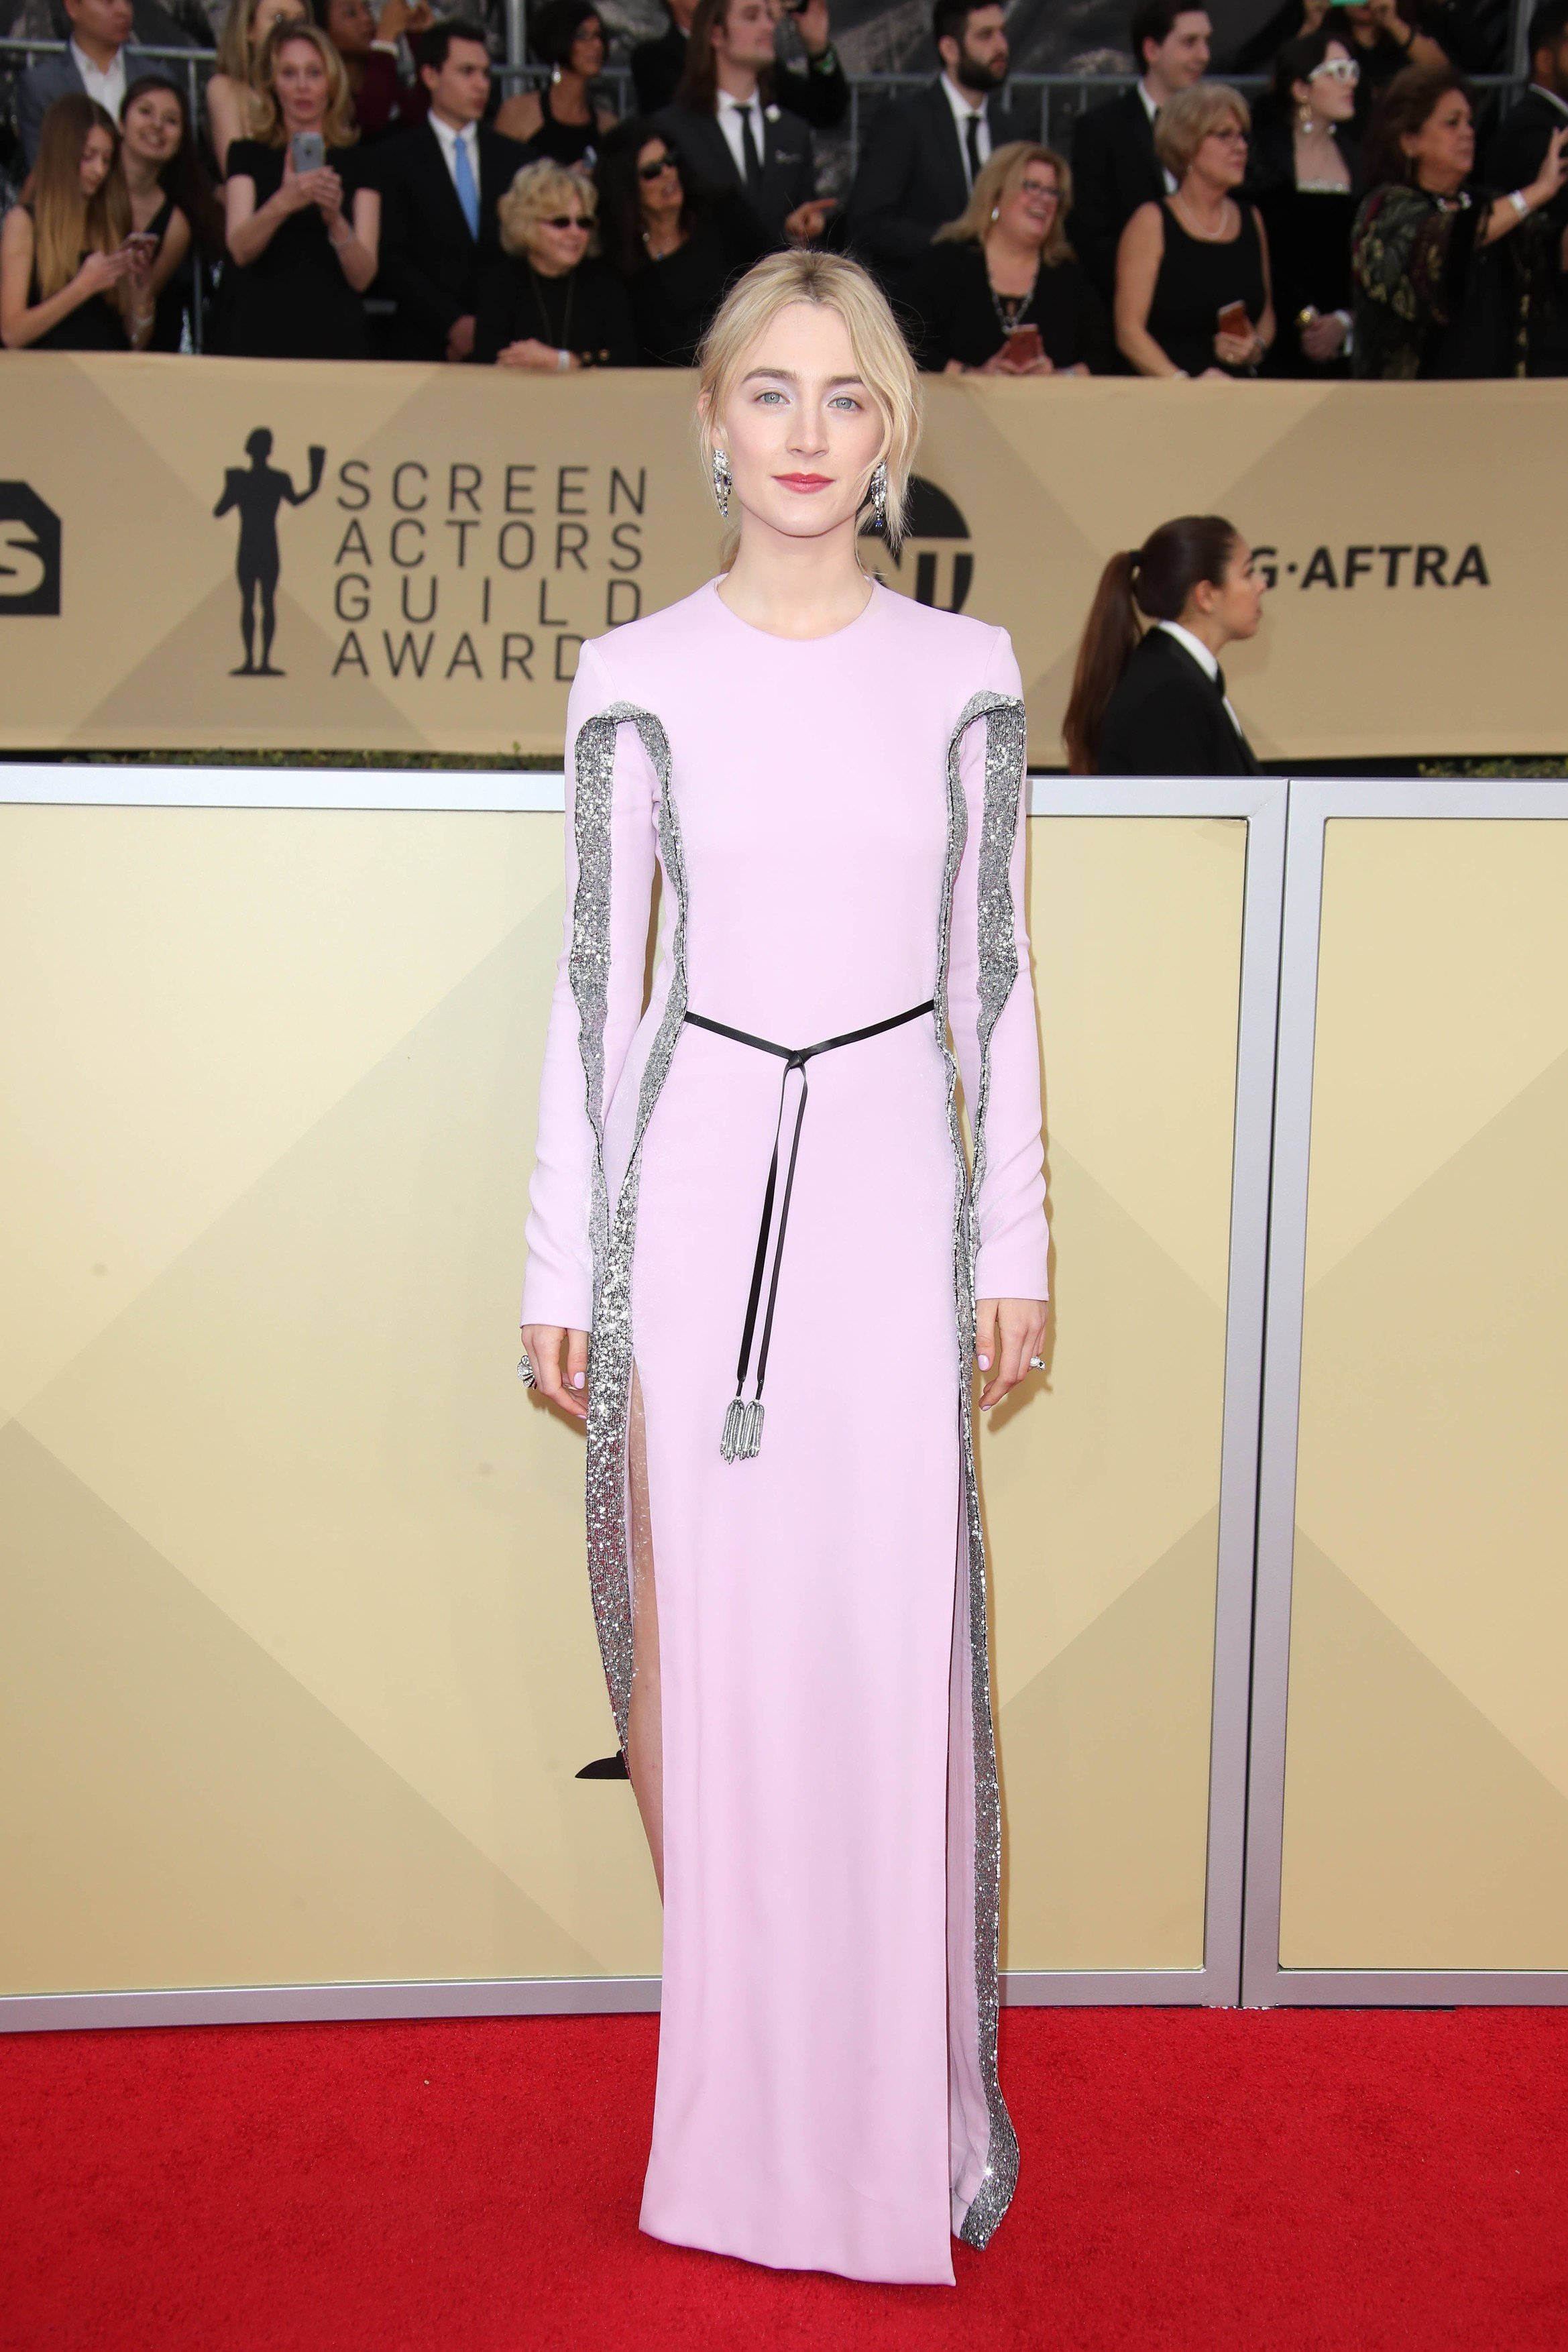 Jan 21, 2018; Los Angeles, CA, USA; Saoirse Ronan arrives at the 24th annual Screen Actors Guild Awards at the Shrine Auditorium., Image: 360902298, License: Rights-managed, Restrictions: *** World Rights *** No Tabloids ***, Model Release: no, Credit line: Profimedia, SIPA USA